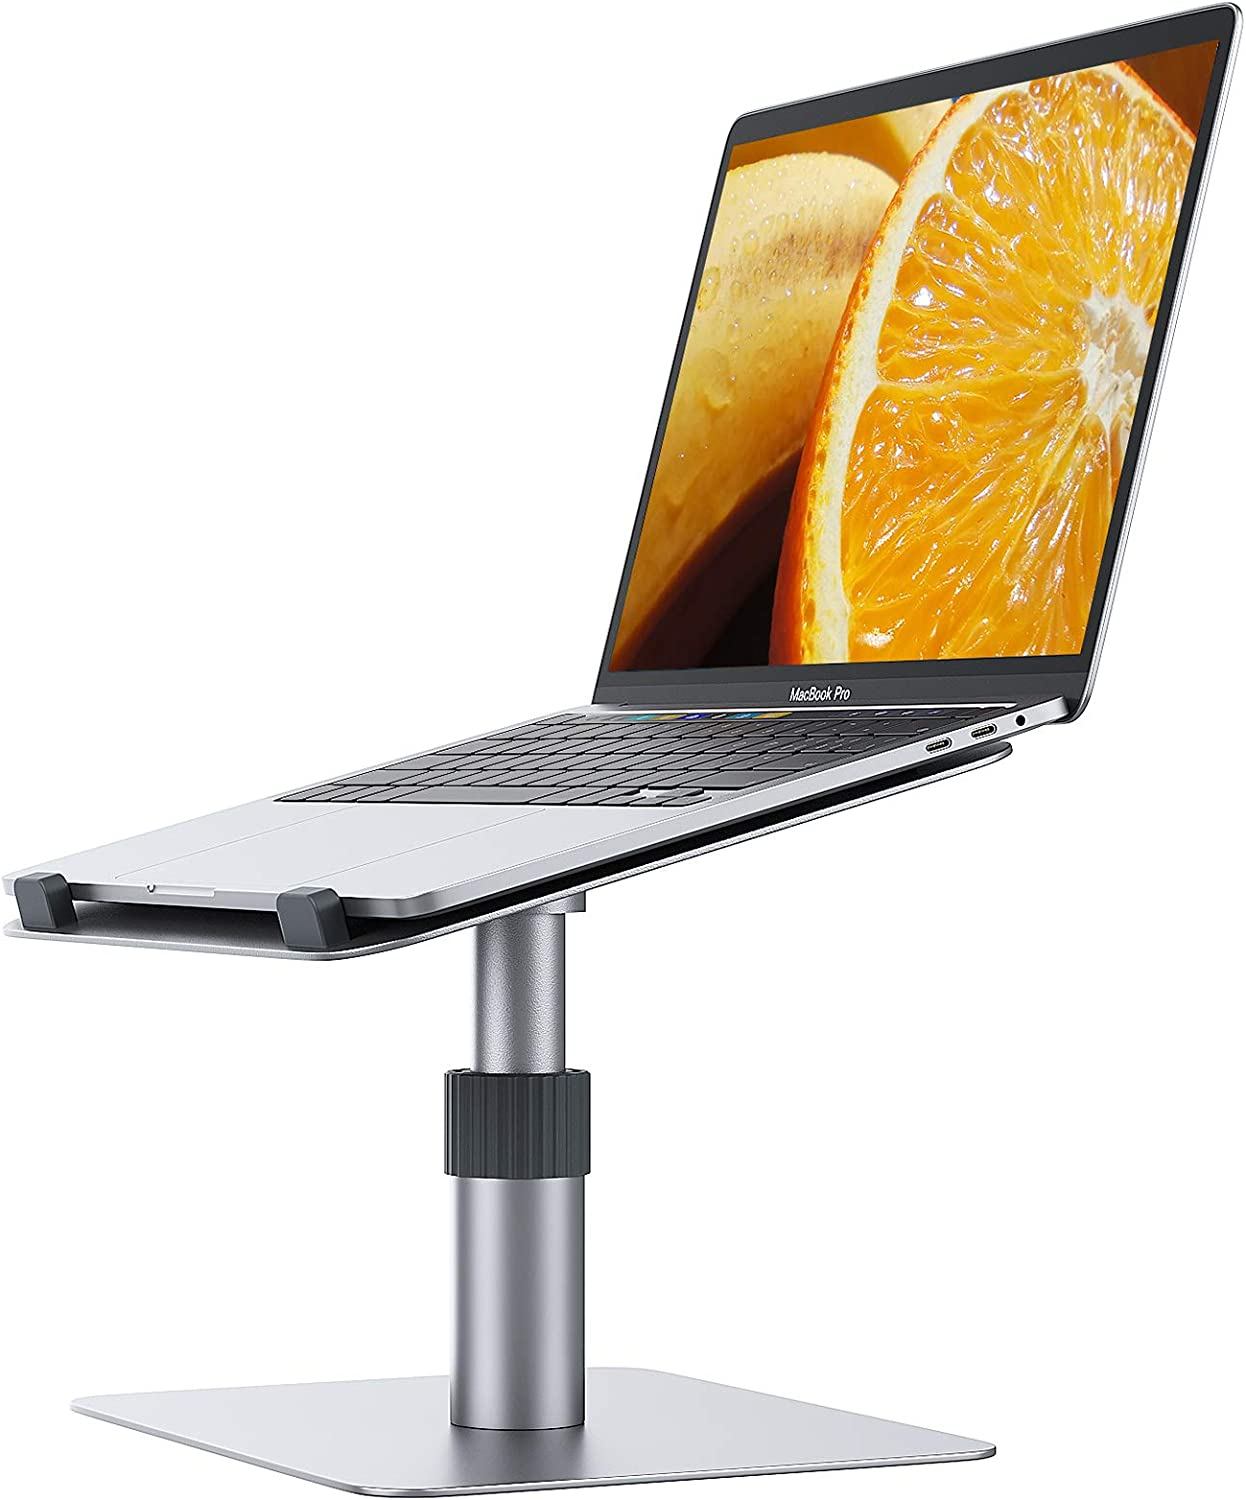 Adjustable Laptop Stand for Desk,Chivving Aluminum Laptop Riser,Adjustable Height 360° Rotating ErgonomicComputer Stand Notebook Holder,Compatible with MacBook Pro/Air,Dell XPS,Lenovo(10-16 Inches)